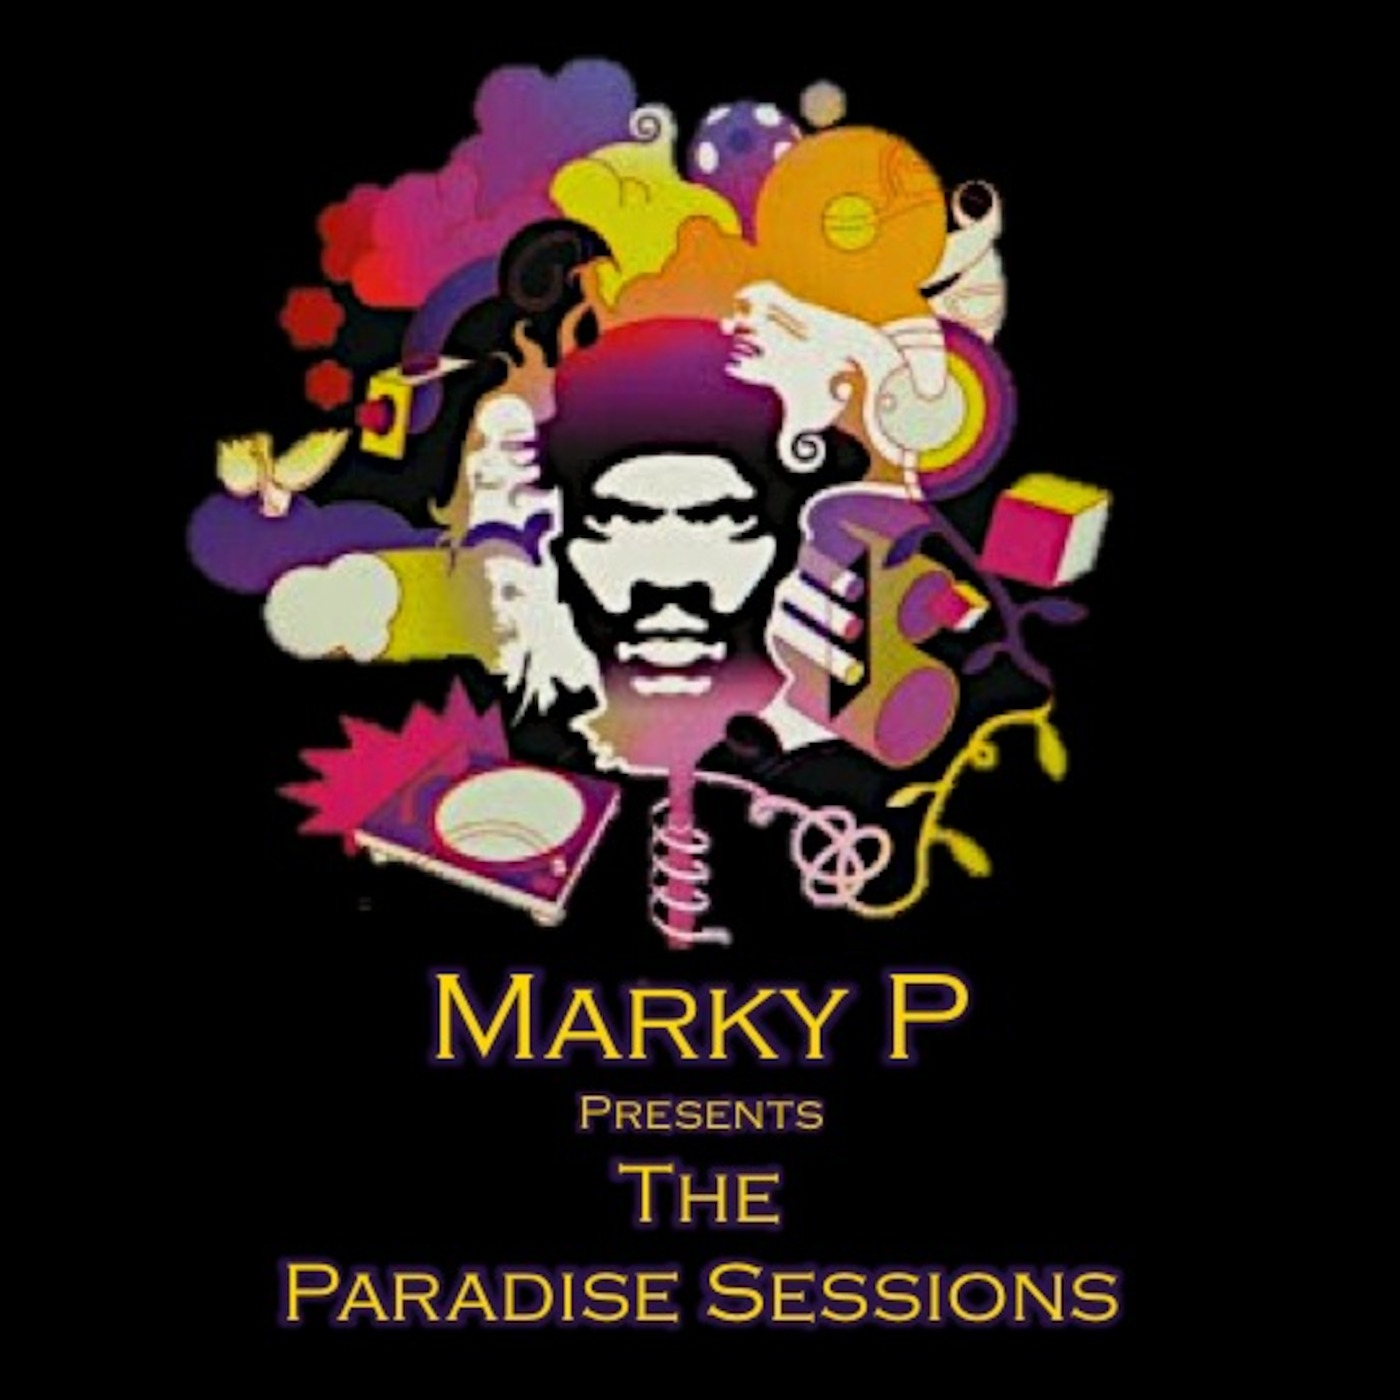 Marky P's Podcast from his show on Cruise FM